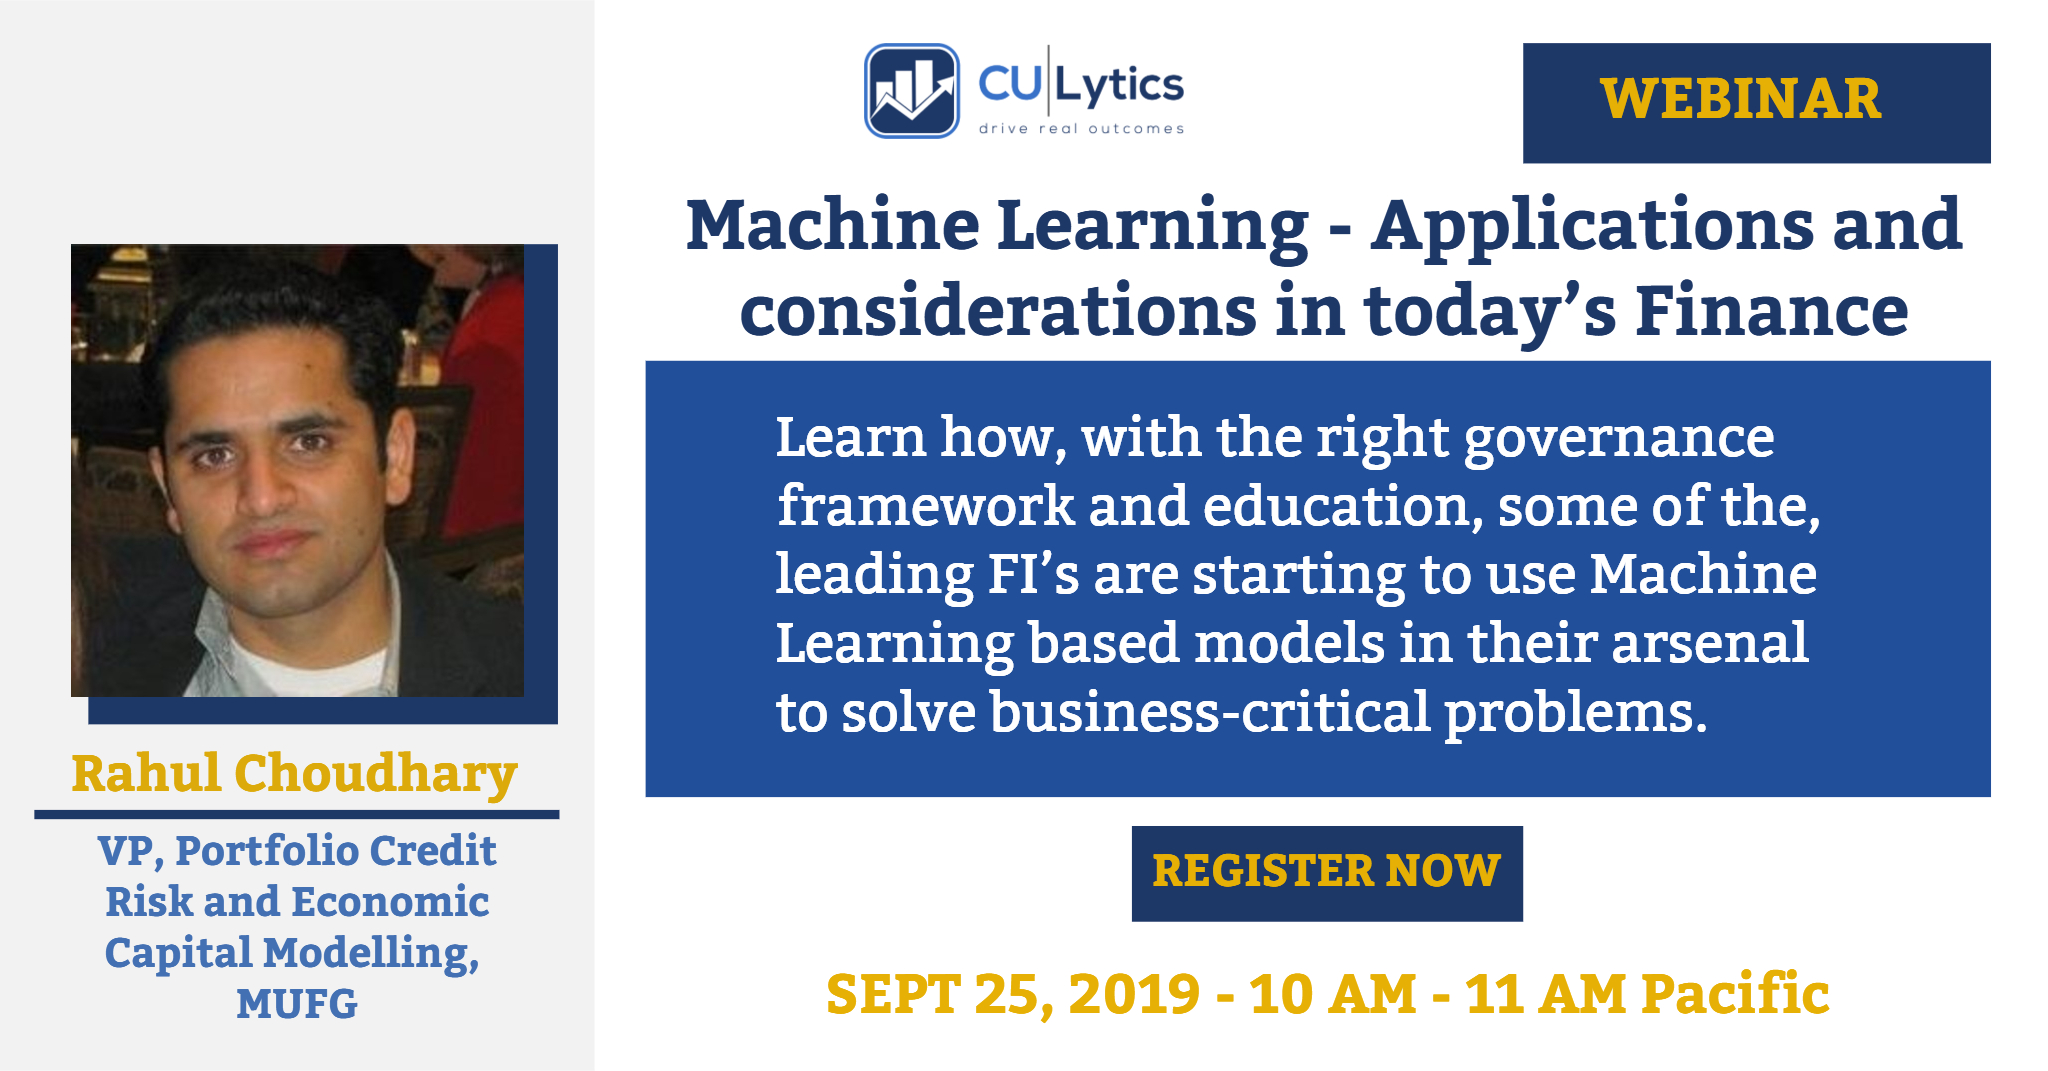 Webinar - Machine Learning - Applications and considerations in today's Finance